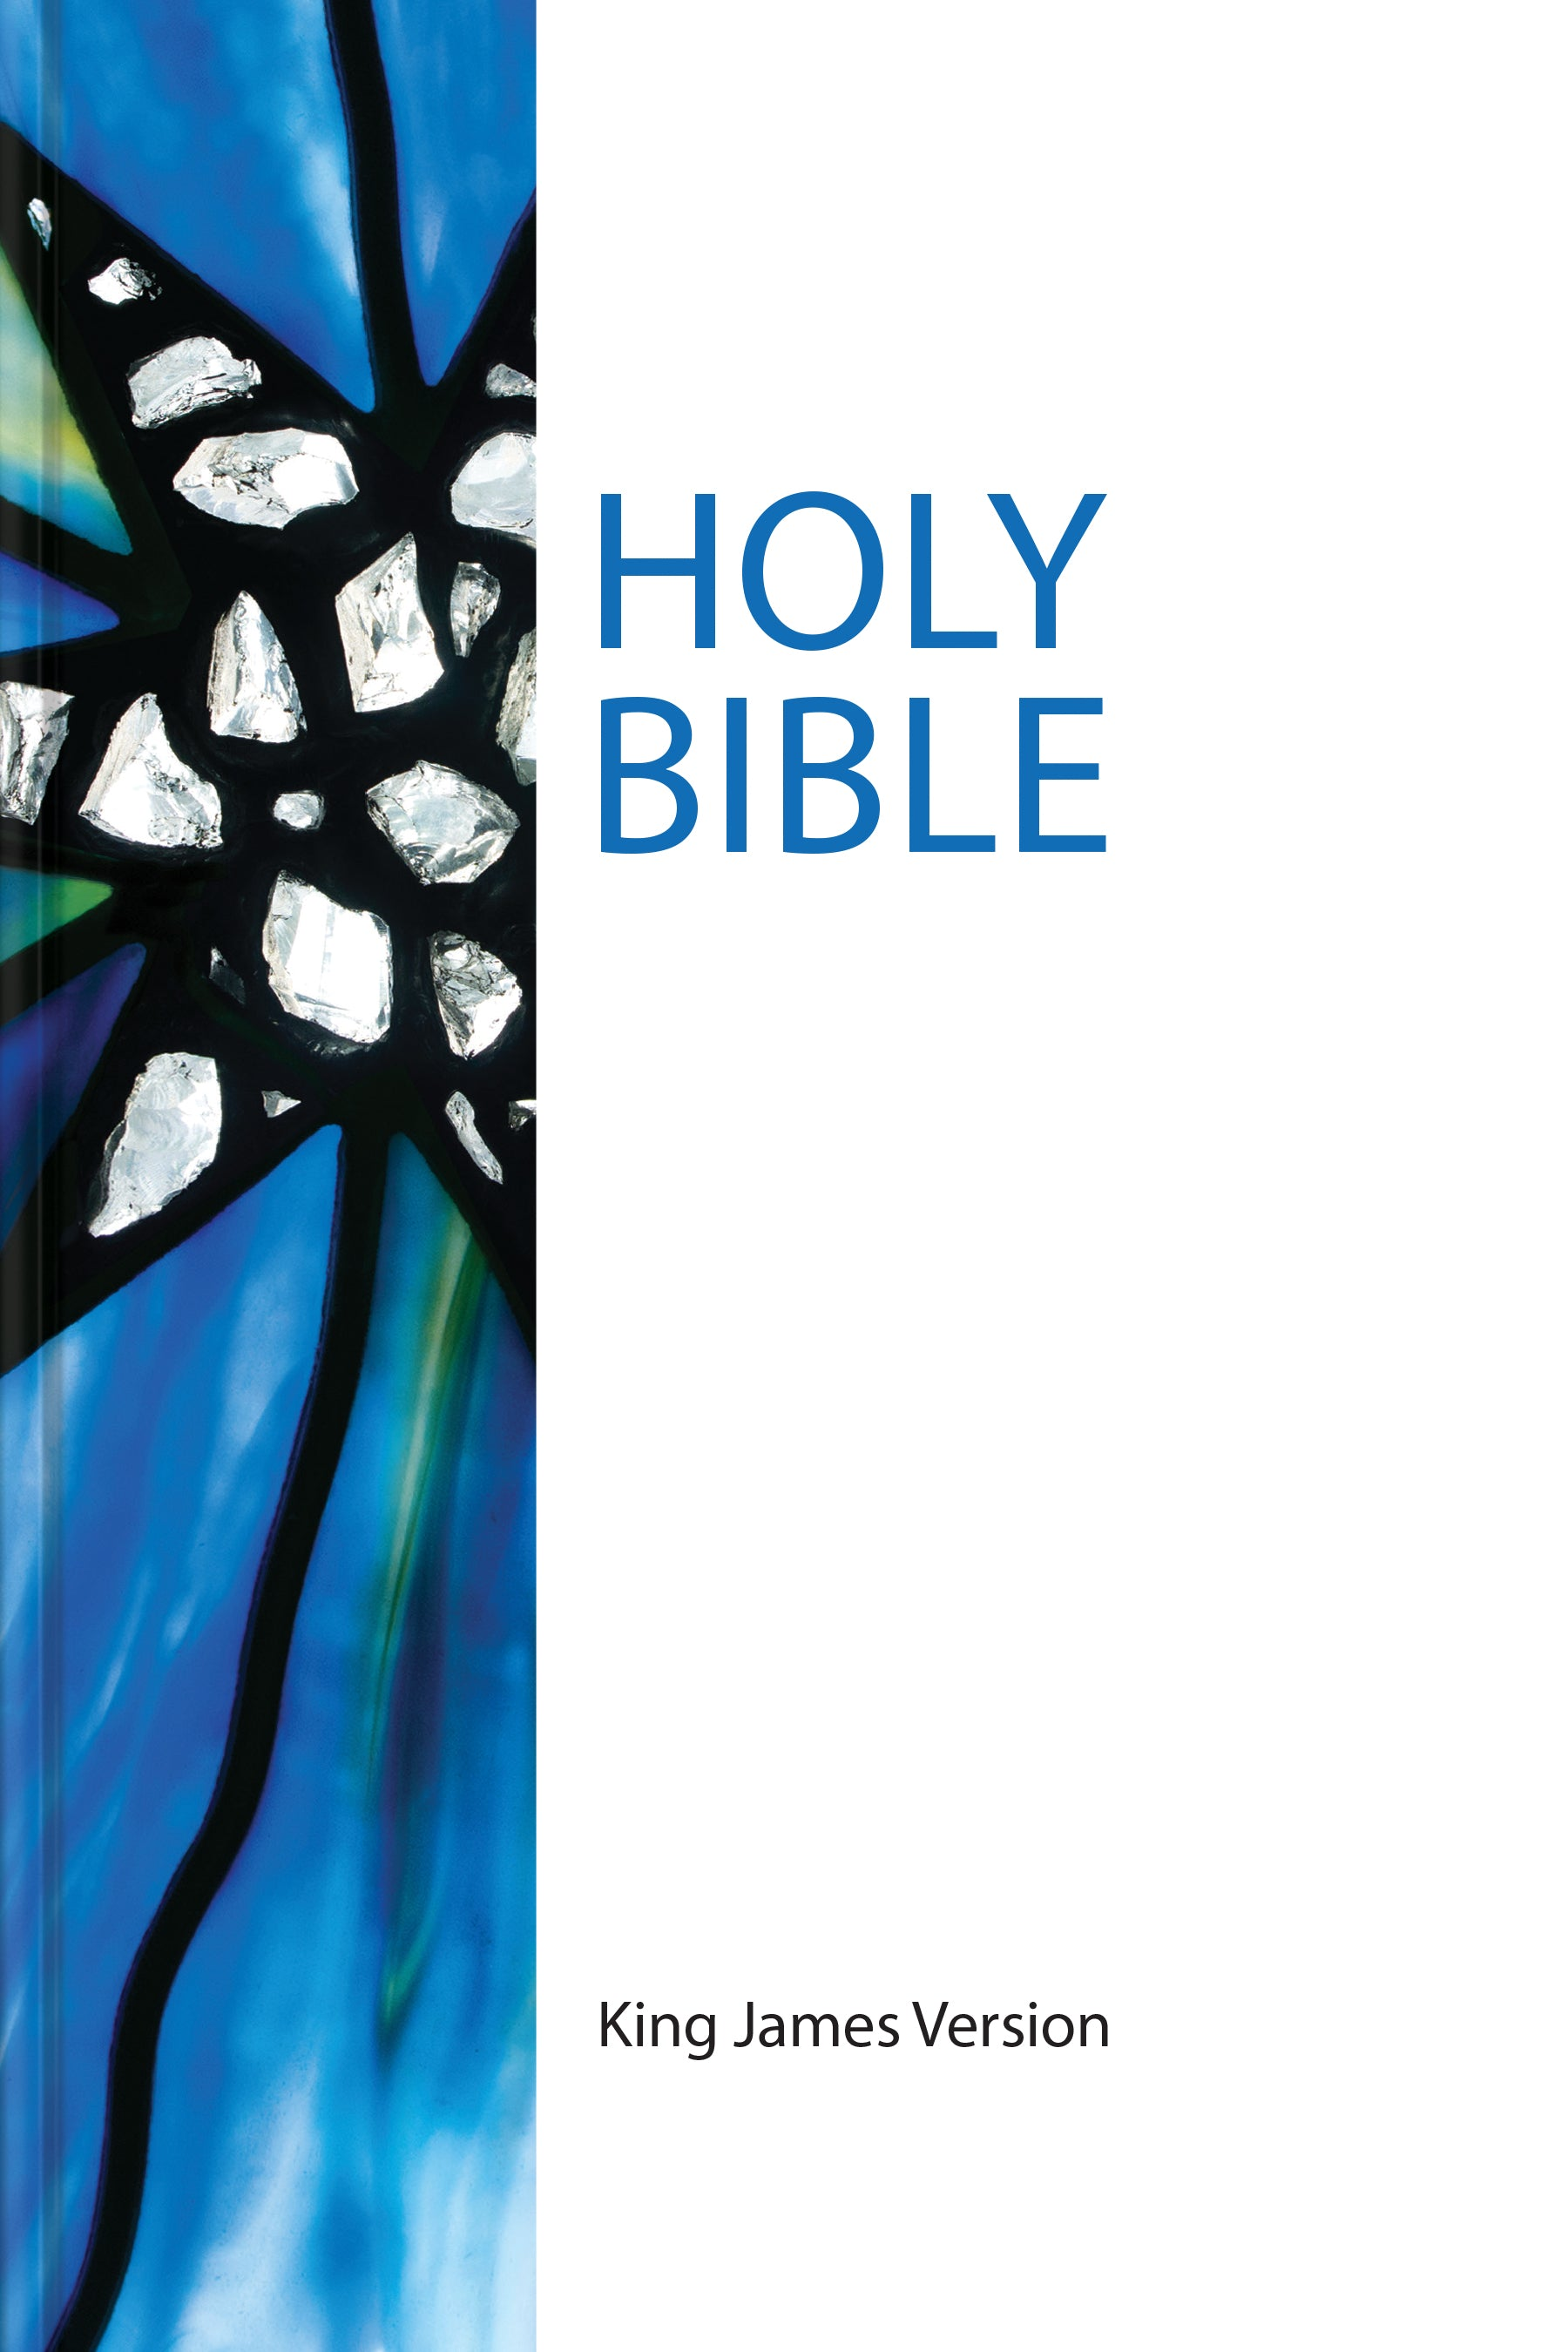 Bible - KJV Sterling Edition (HB) (indexed)